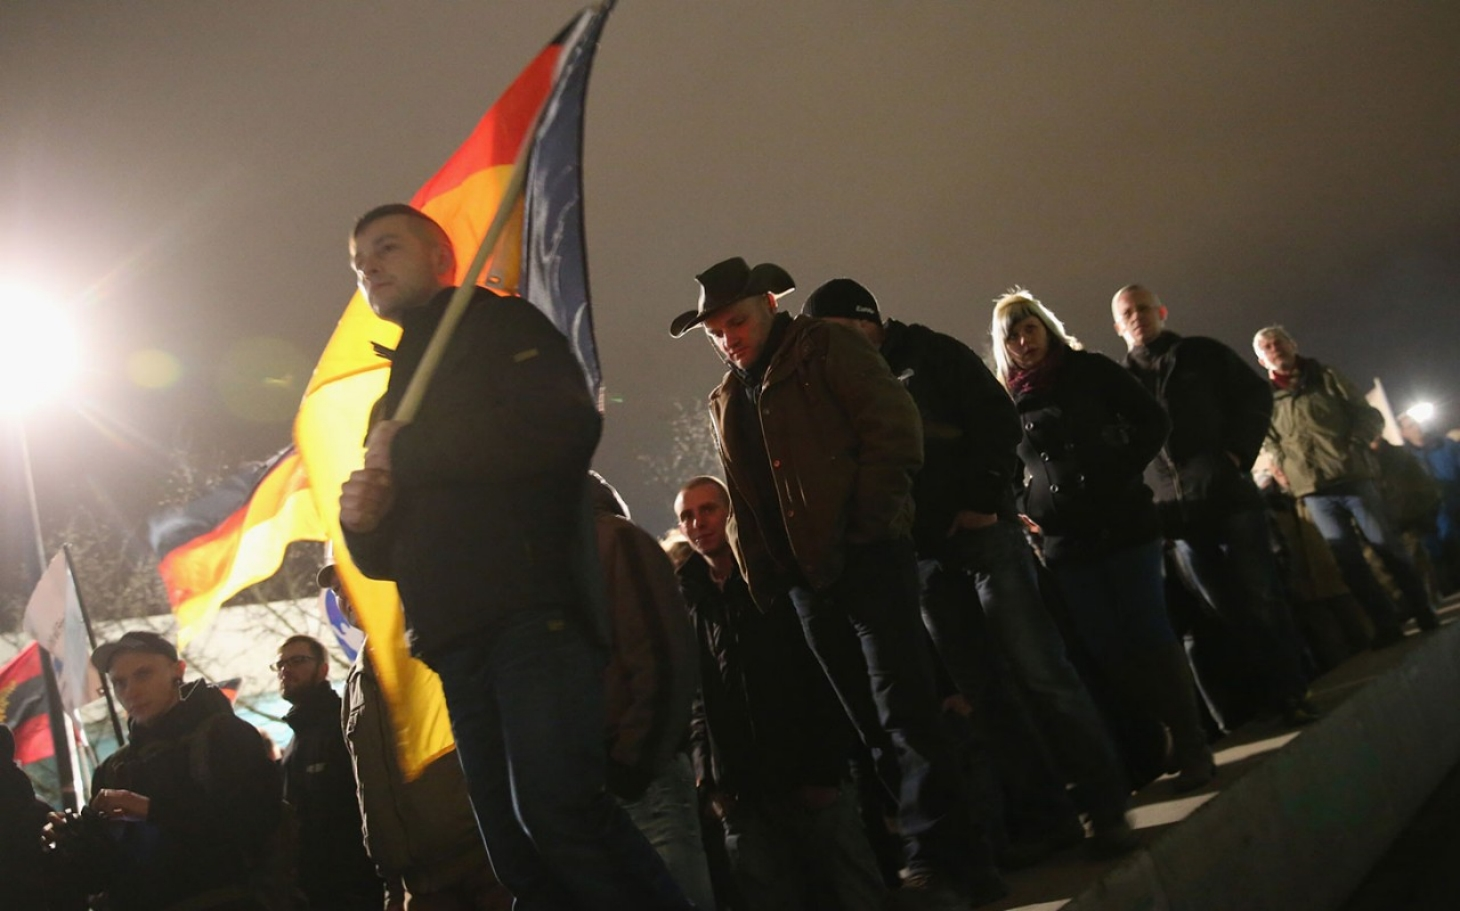 dresden muslim The pegida movement (patriotic europeans against the islamization of the west) was unknown three months ago now it's making dresden famous - for all the wrong reasons.